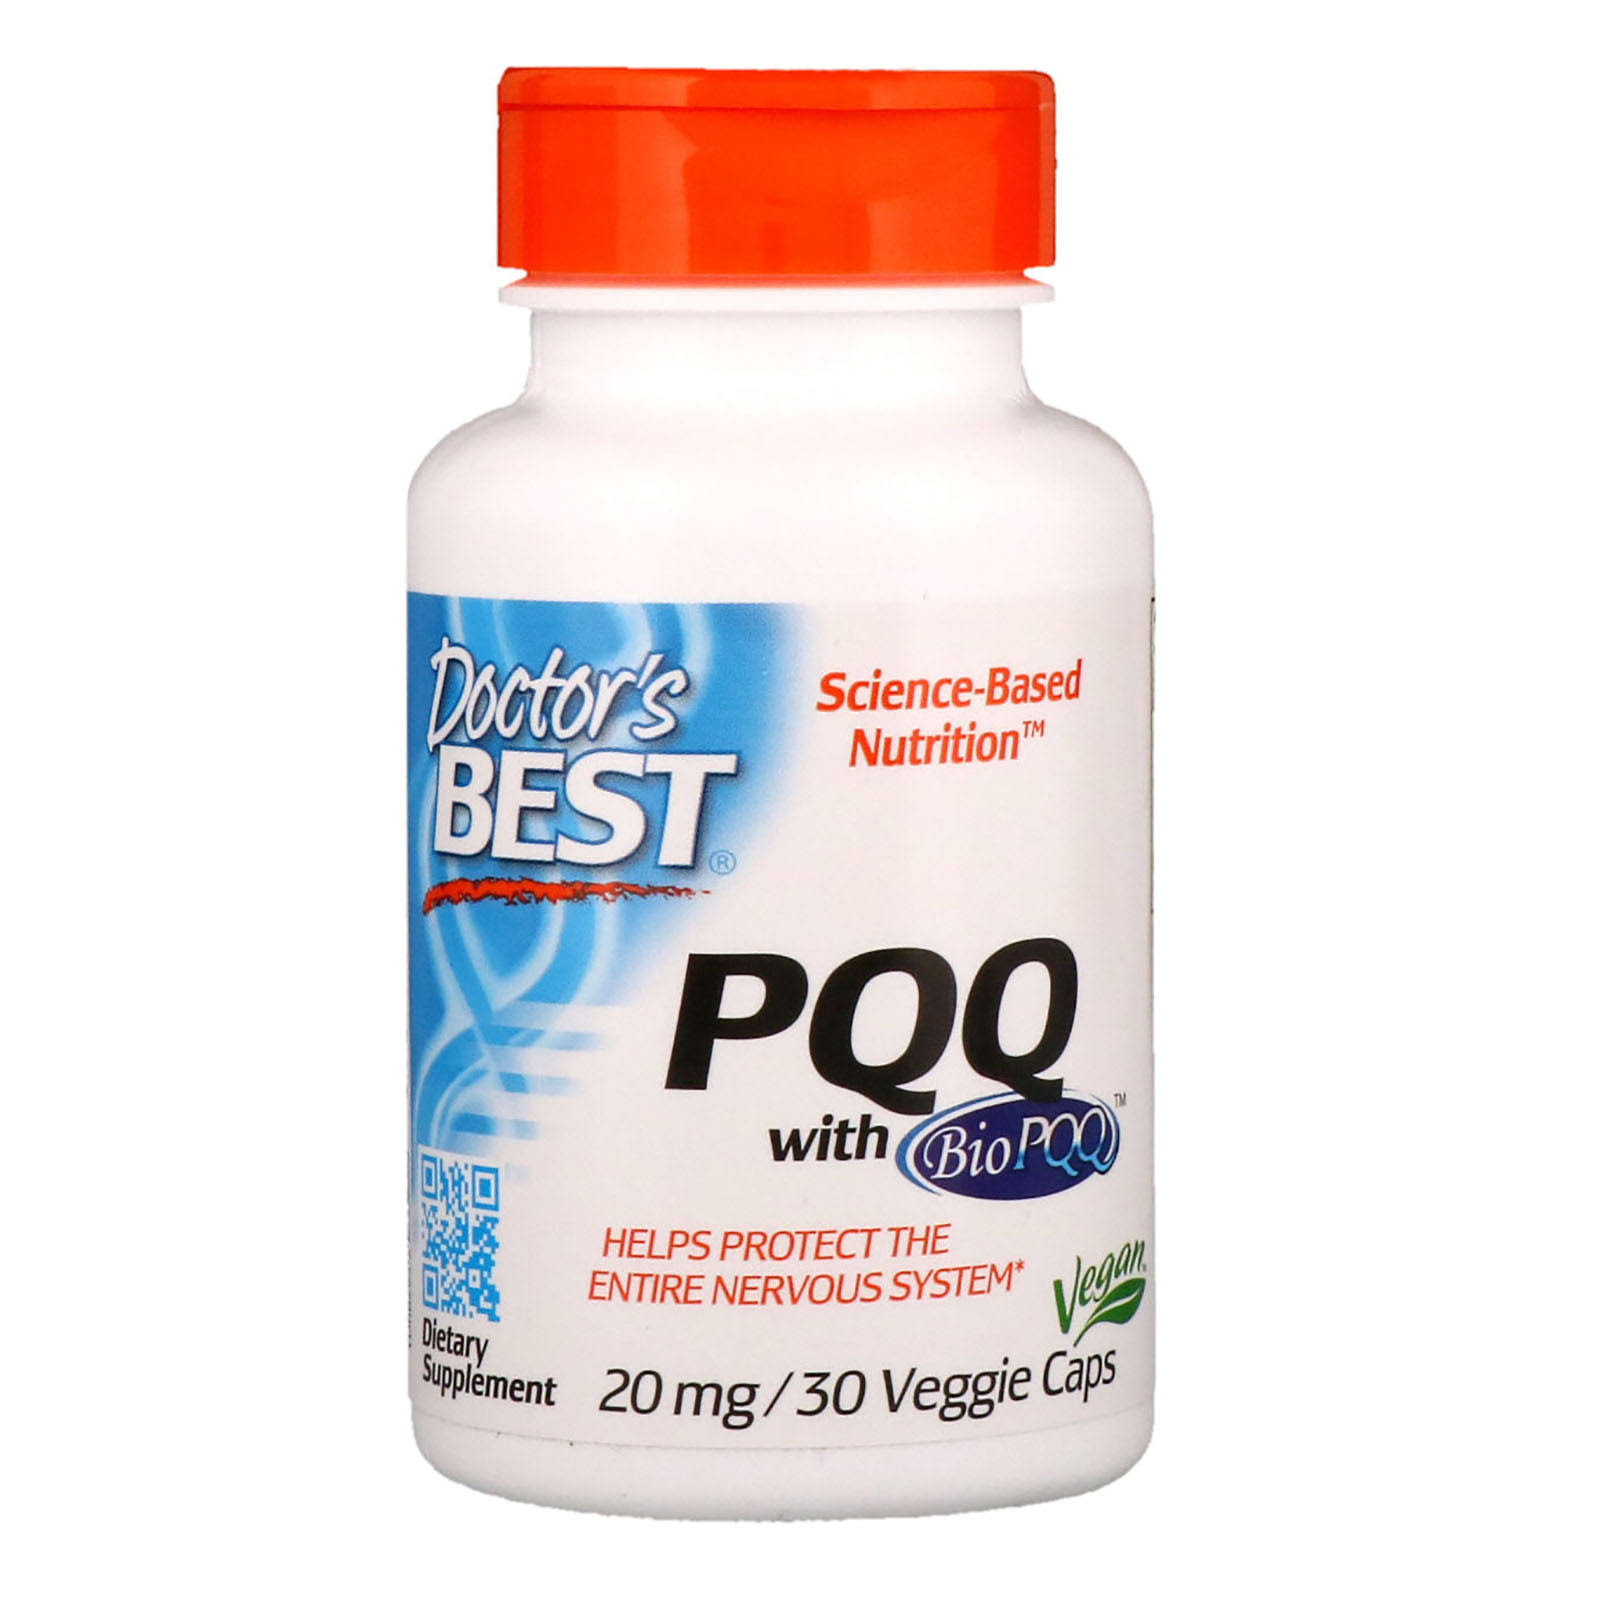 Doctor's Best PQQ Nutritional Supplement - 20mg, 30ct